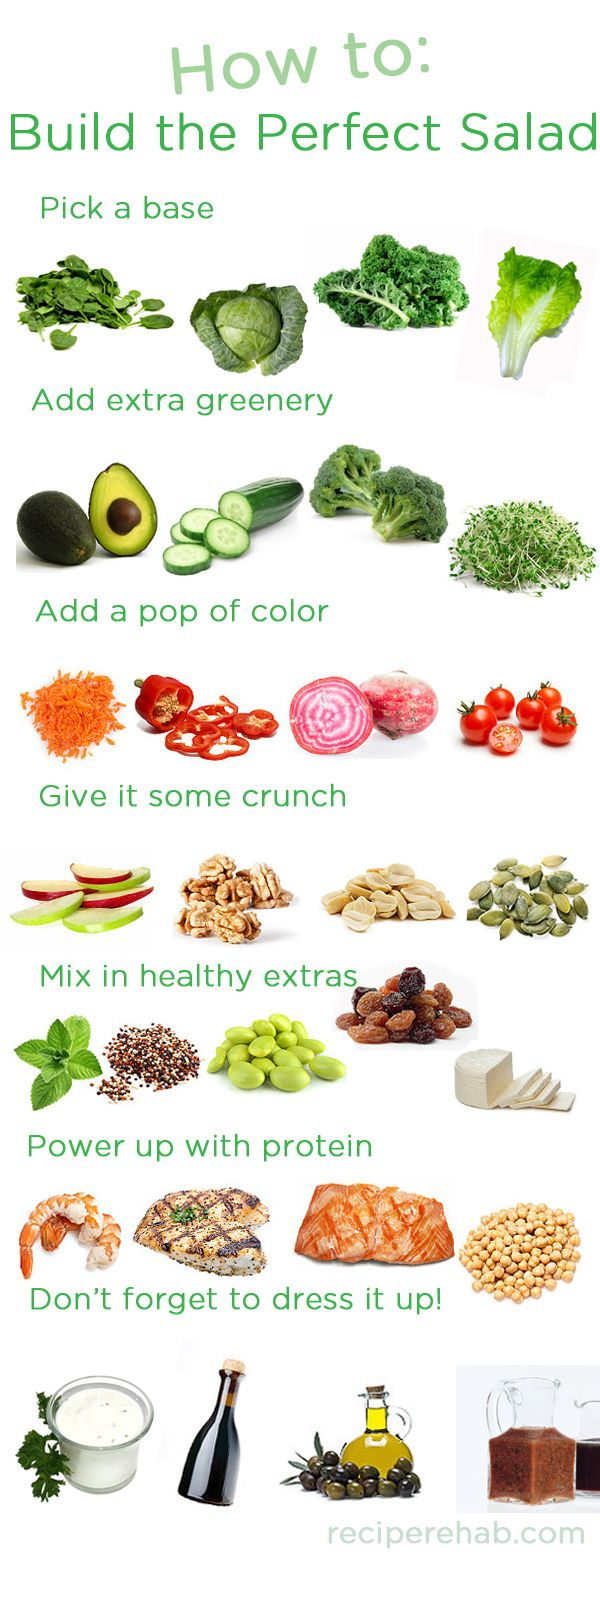 How to build the perfect salad. Simplest guide ever!